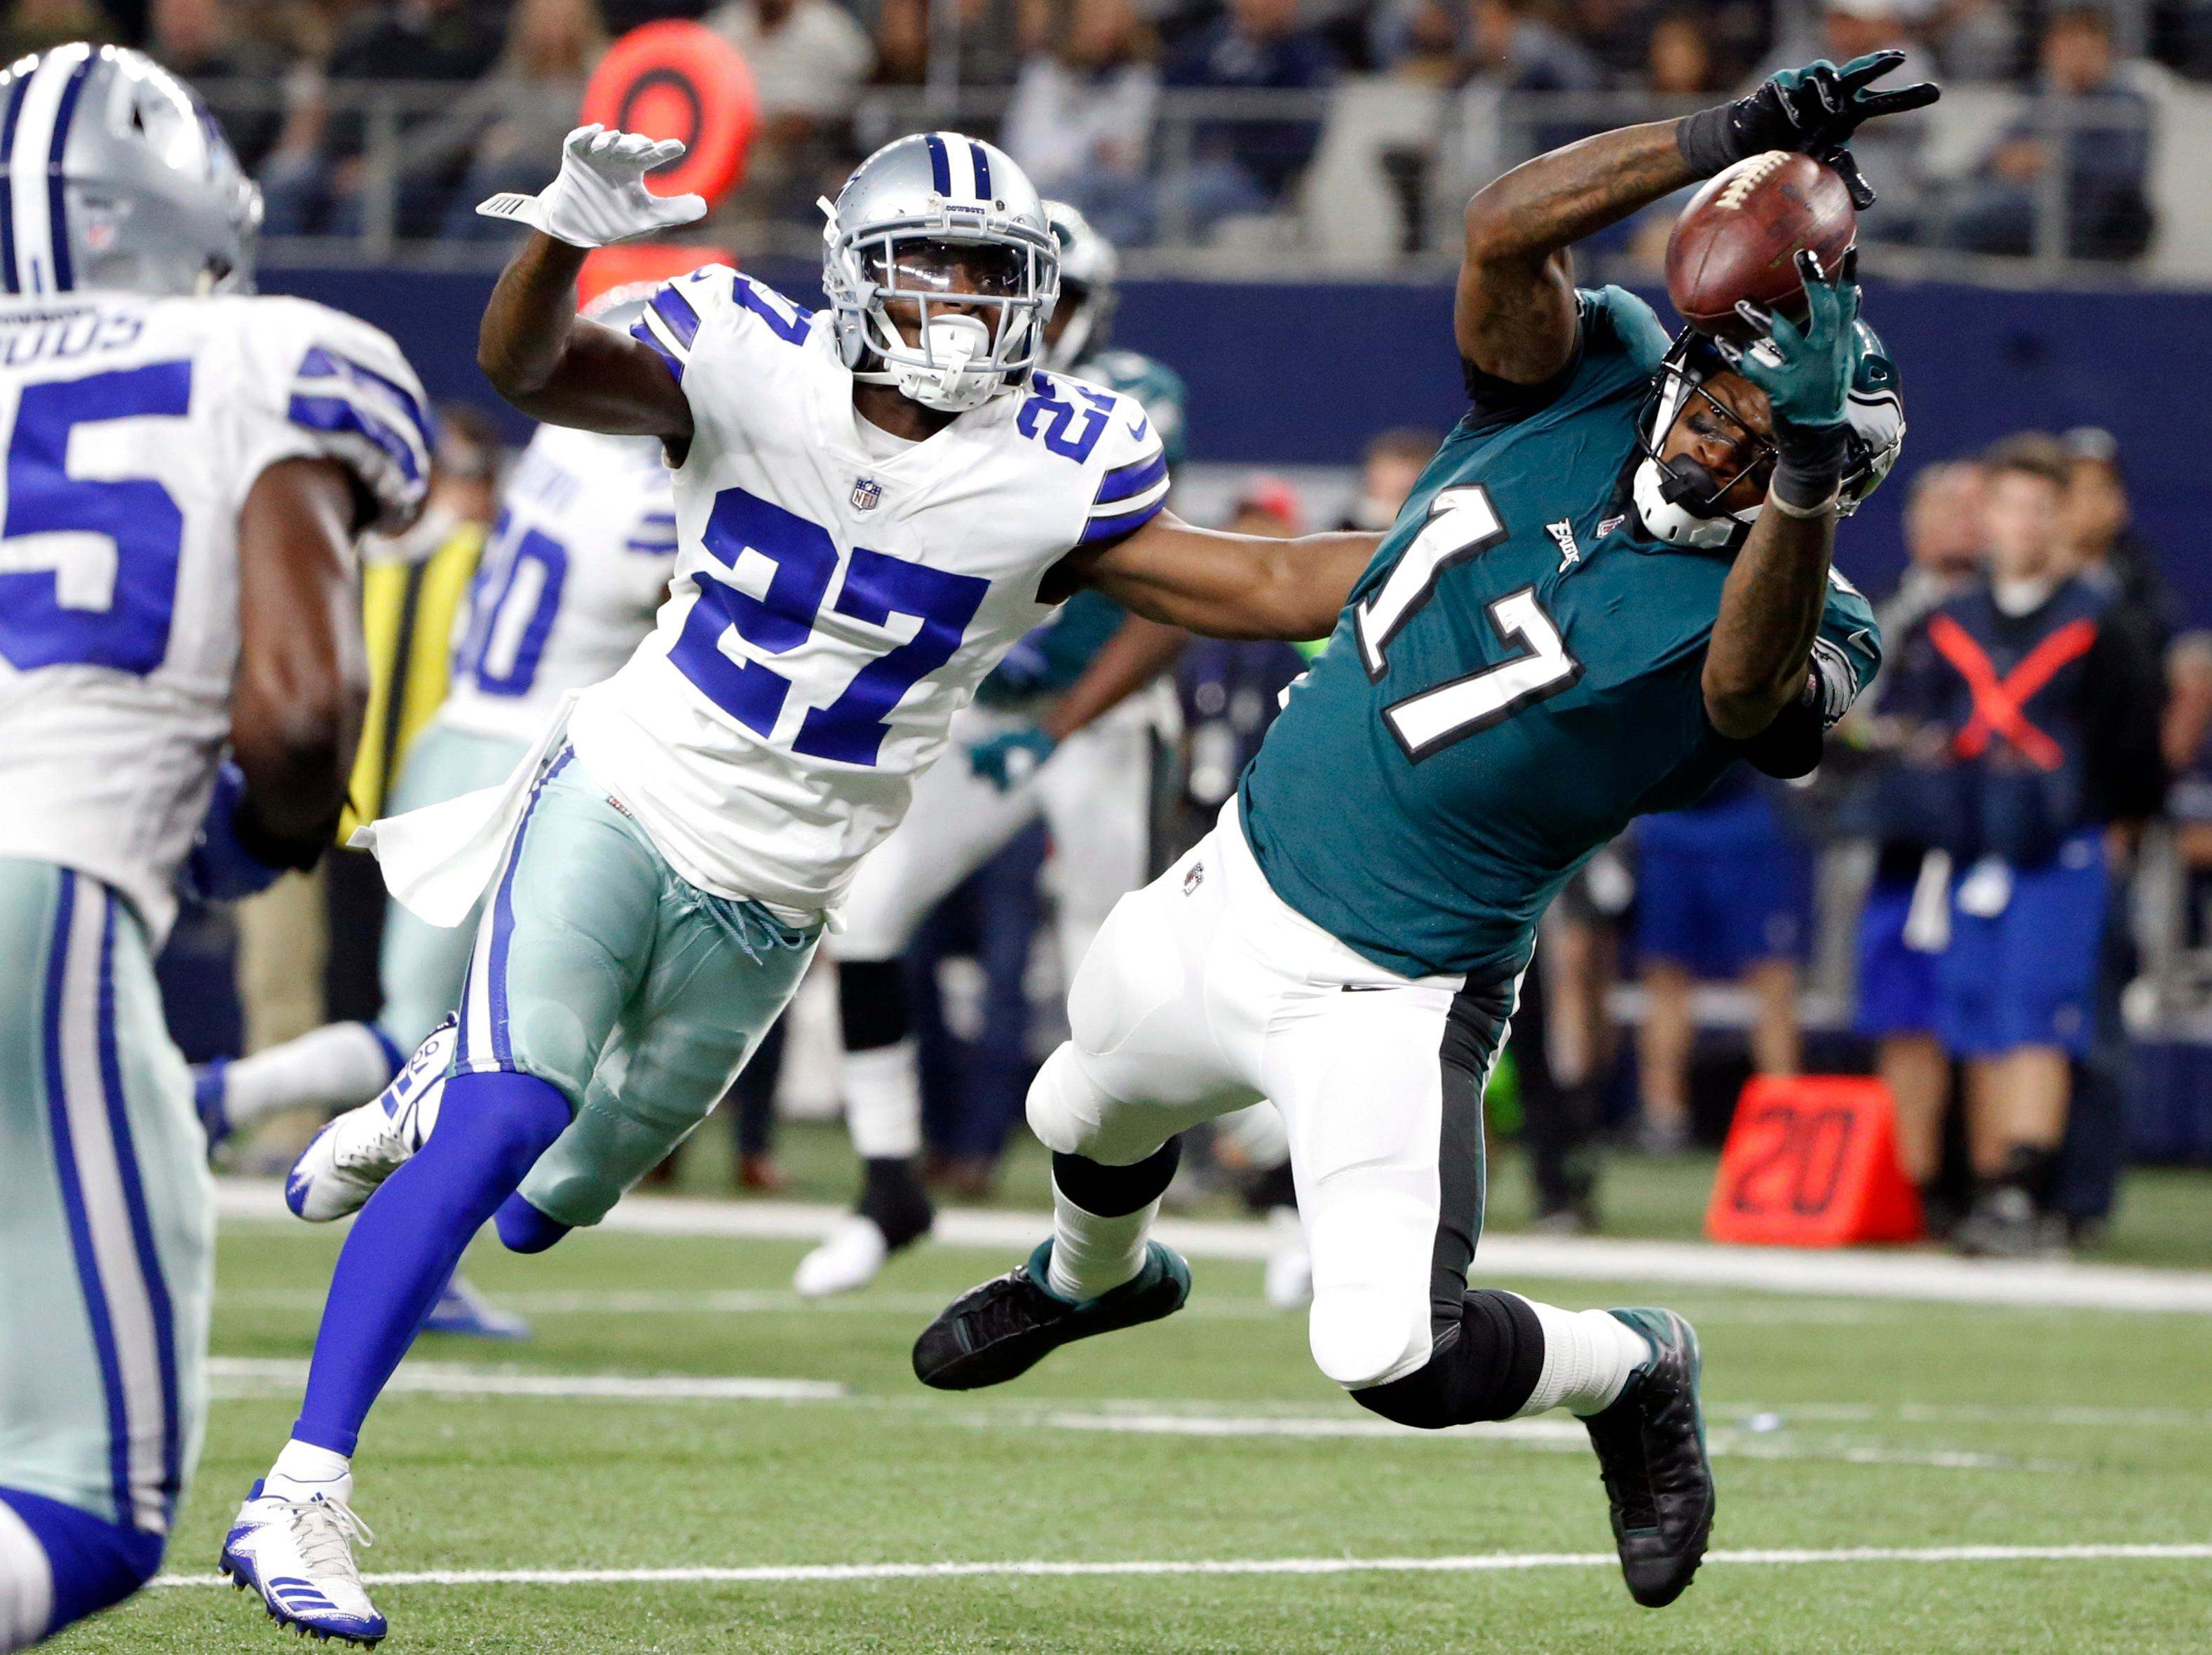 Sean-martin_dallas-cowboys_cowboys-minicamp-time-to-worry-about-jourdan-lewis-playing-time